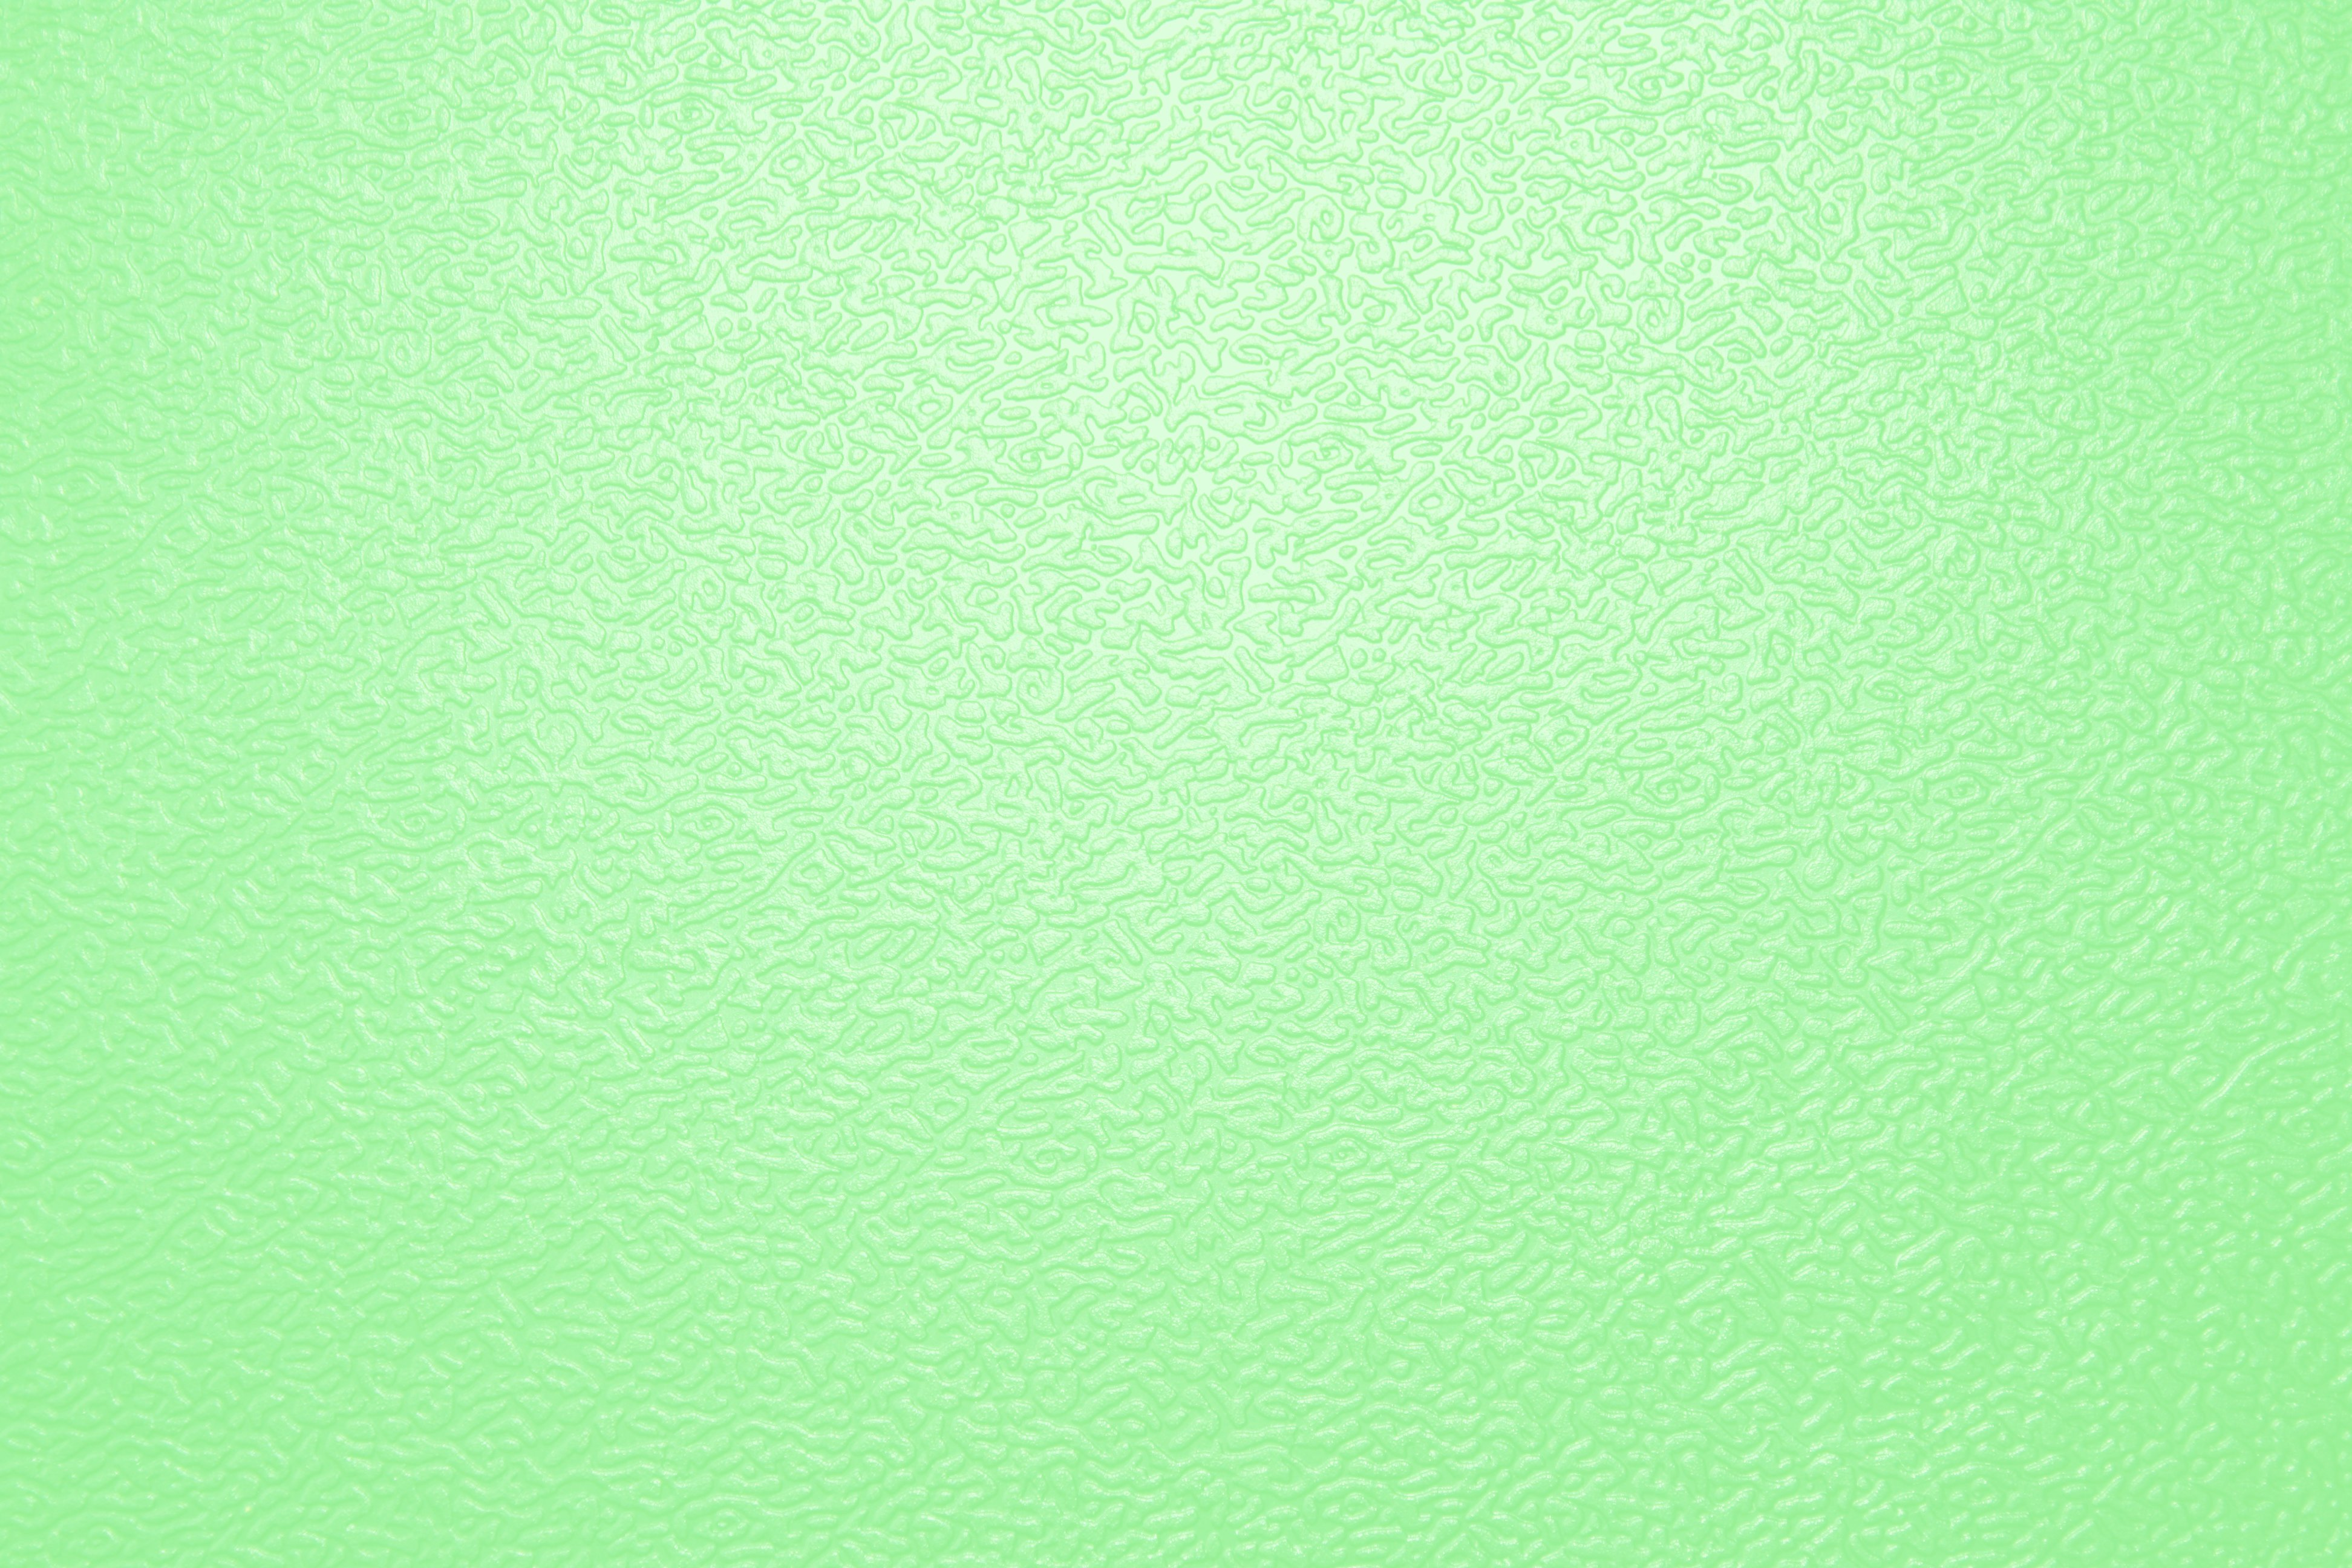 Light green and white pattern - photo#18